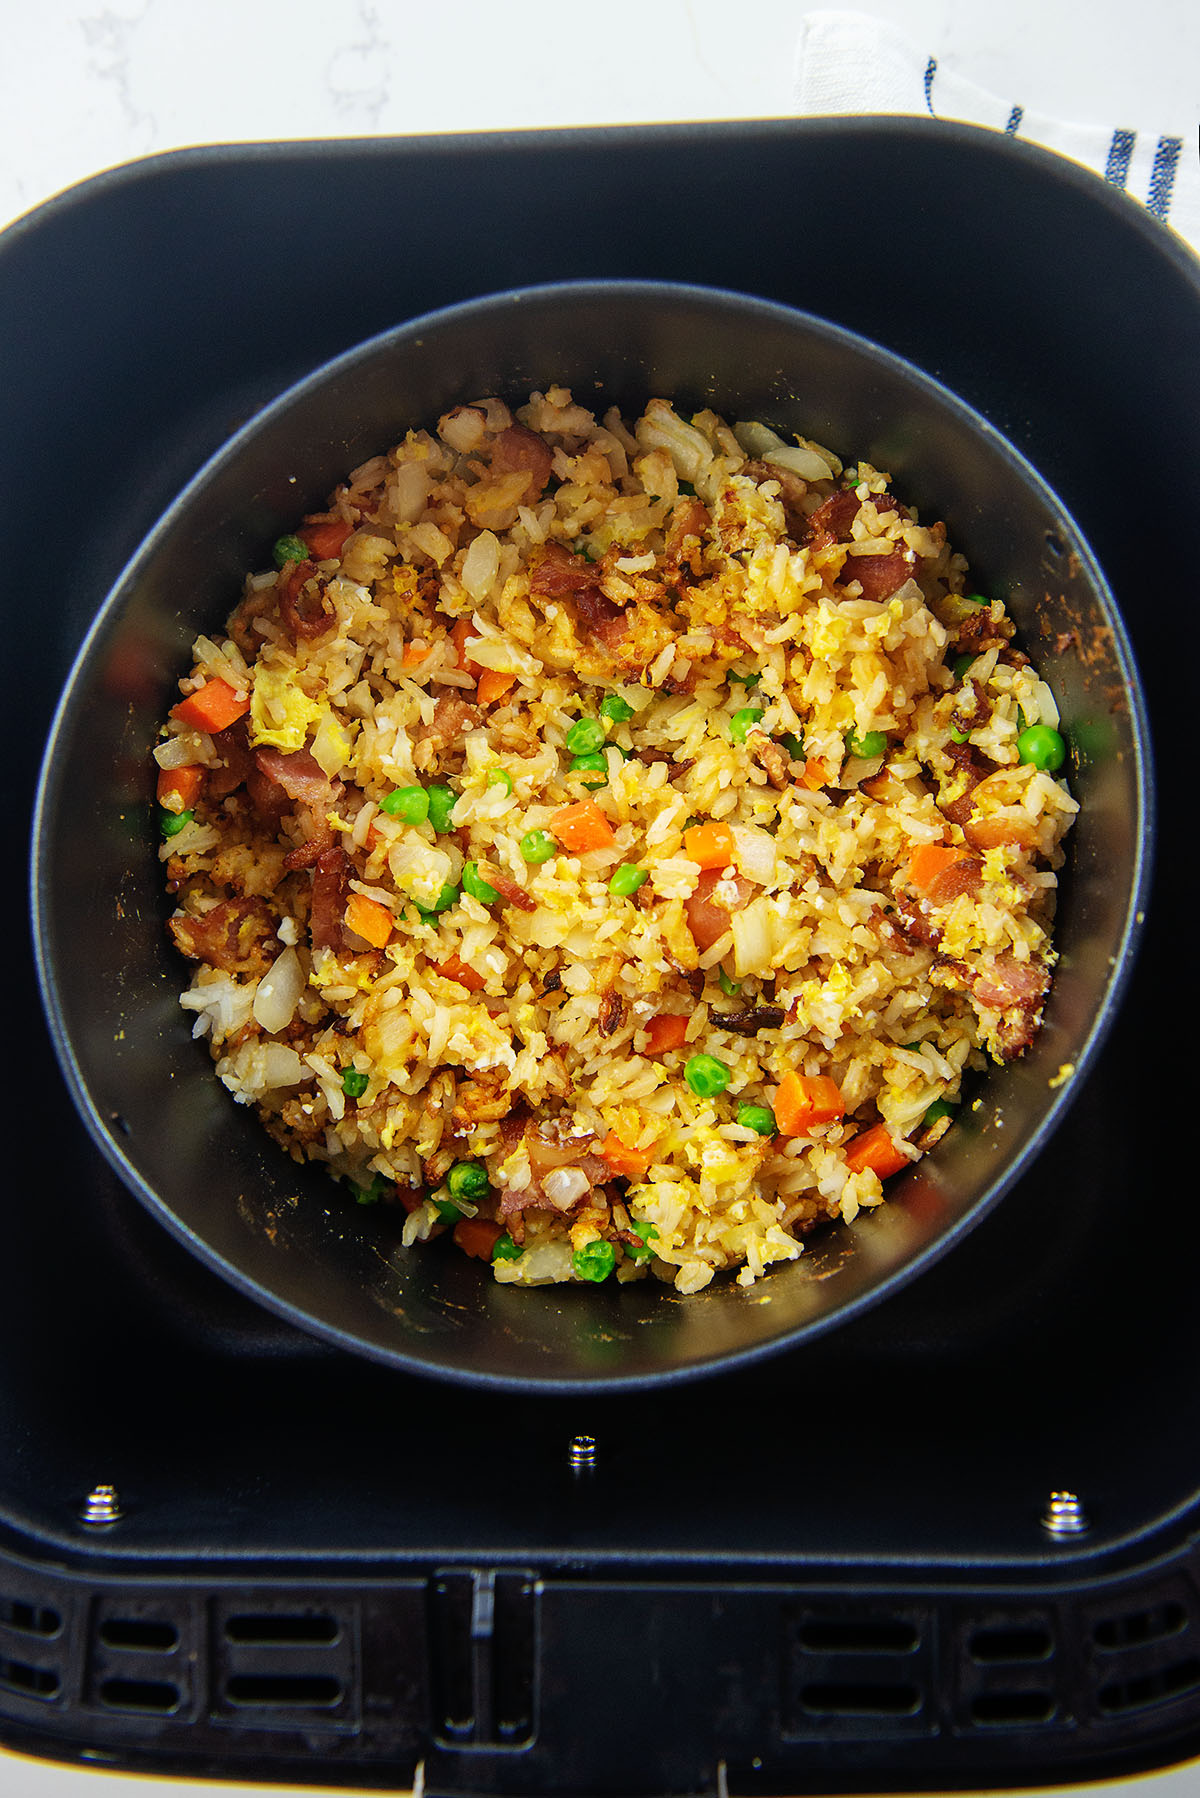 Overhead view of fried rice in a baking dish in an air fryer basket